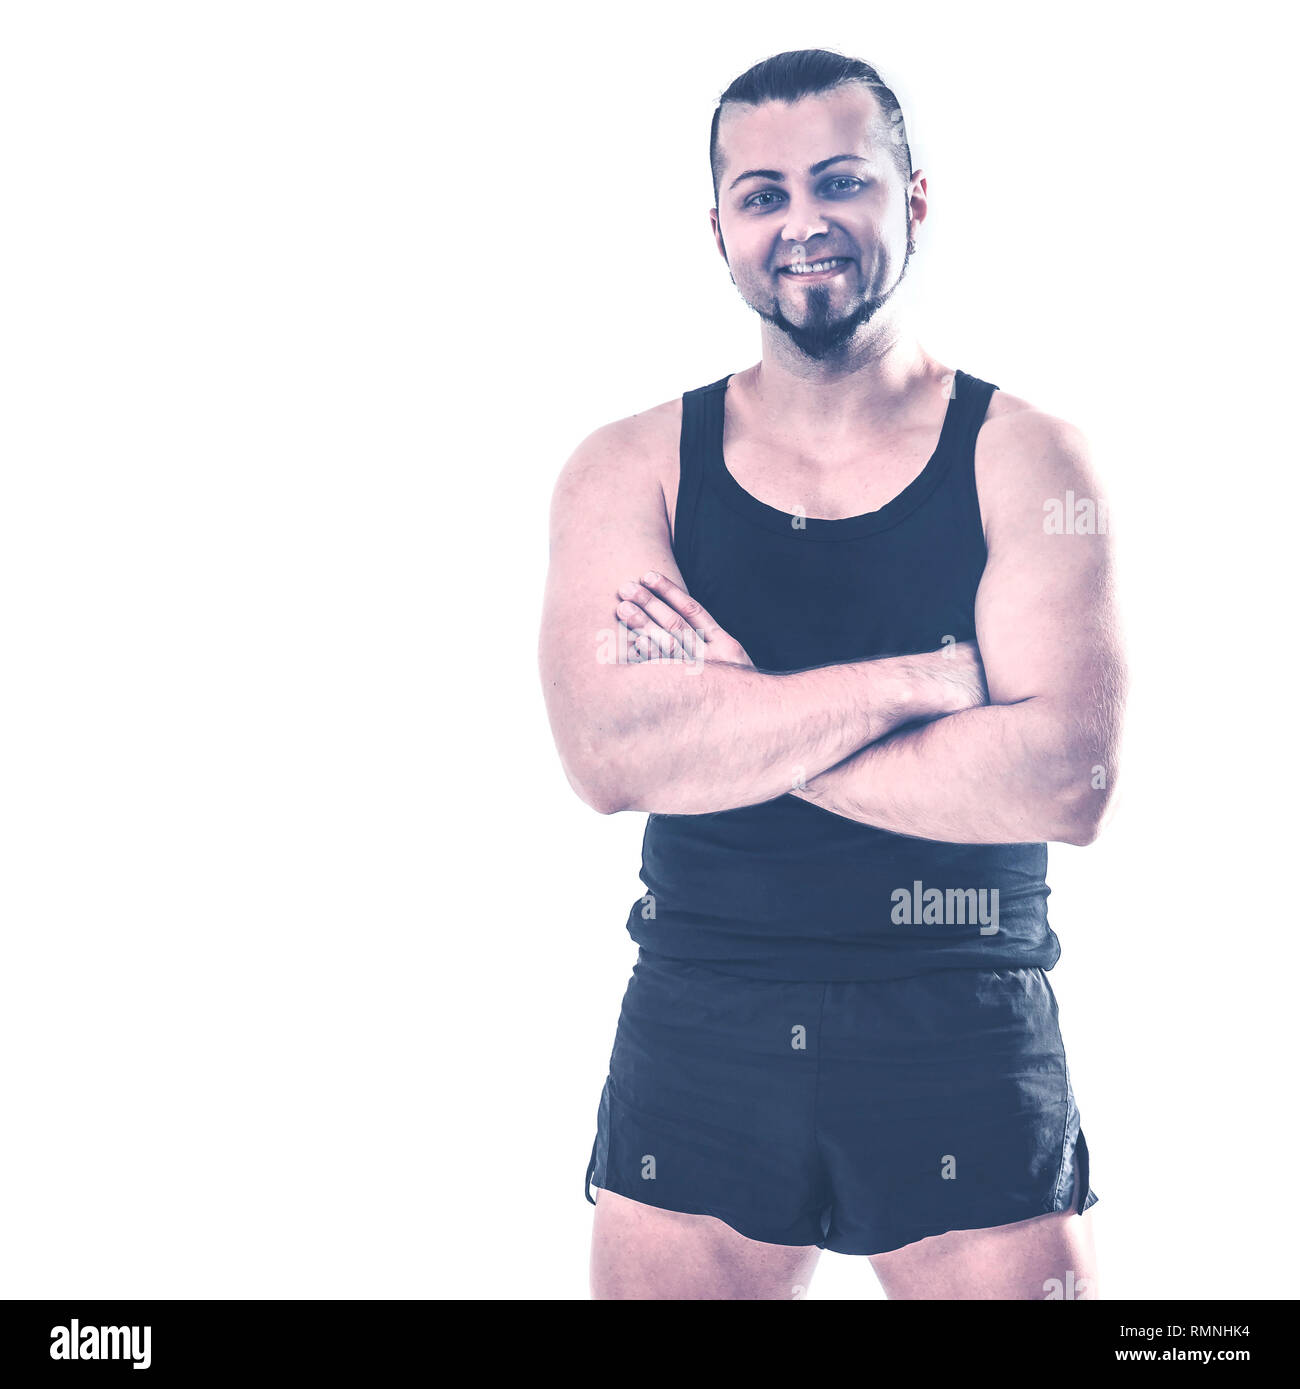 portrait of charismatic trainer on bodybuilding on a light backg Stock Photo